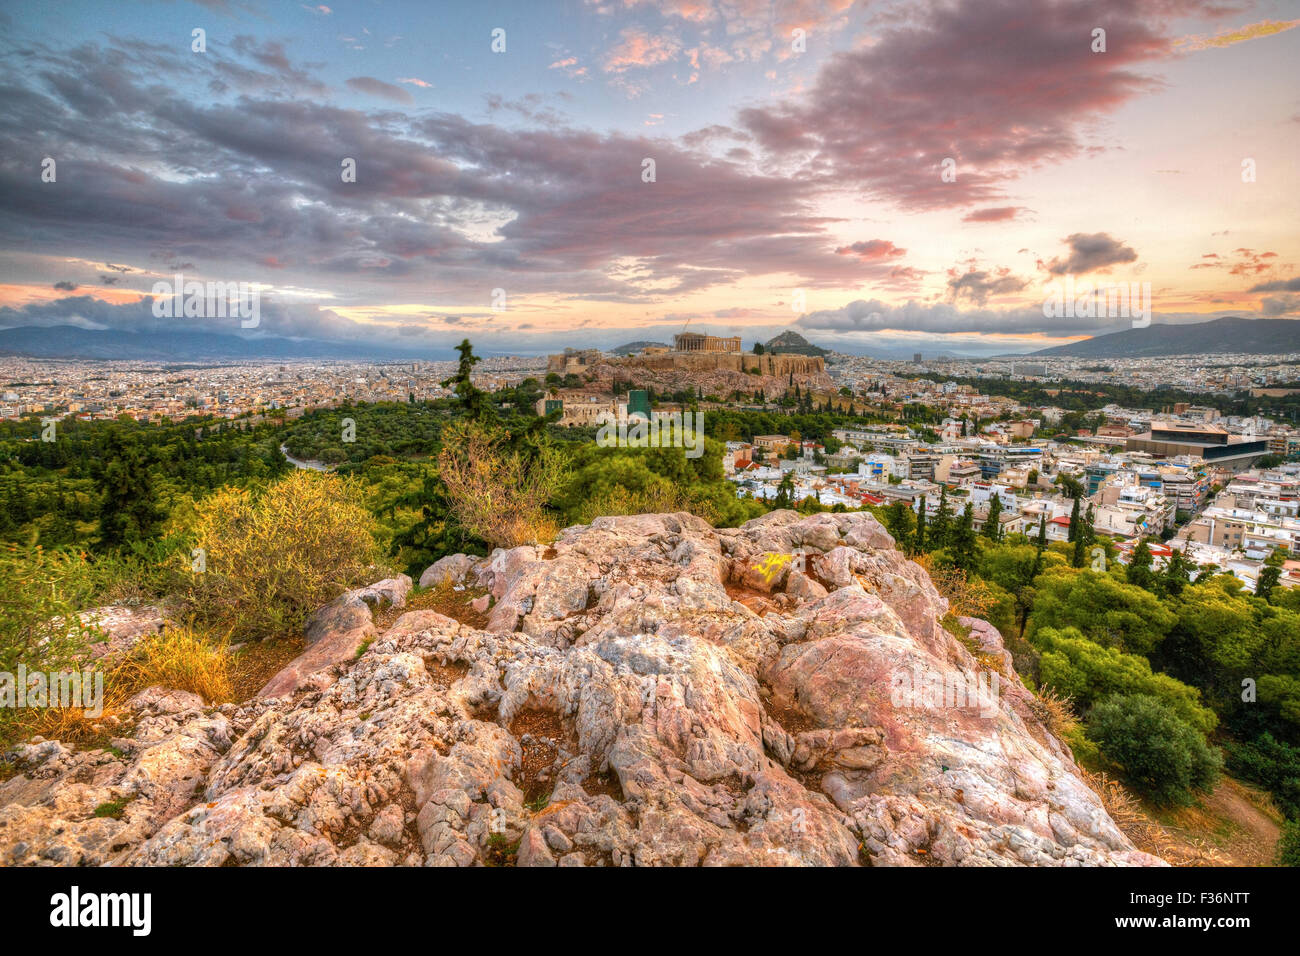 Morning view of Acropolis from Filopappou hill in centre of Athens. HDR image. - Stock Image